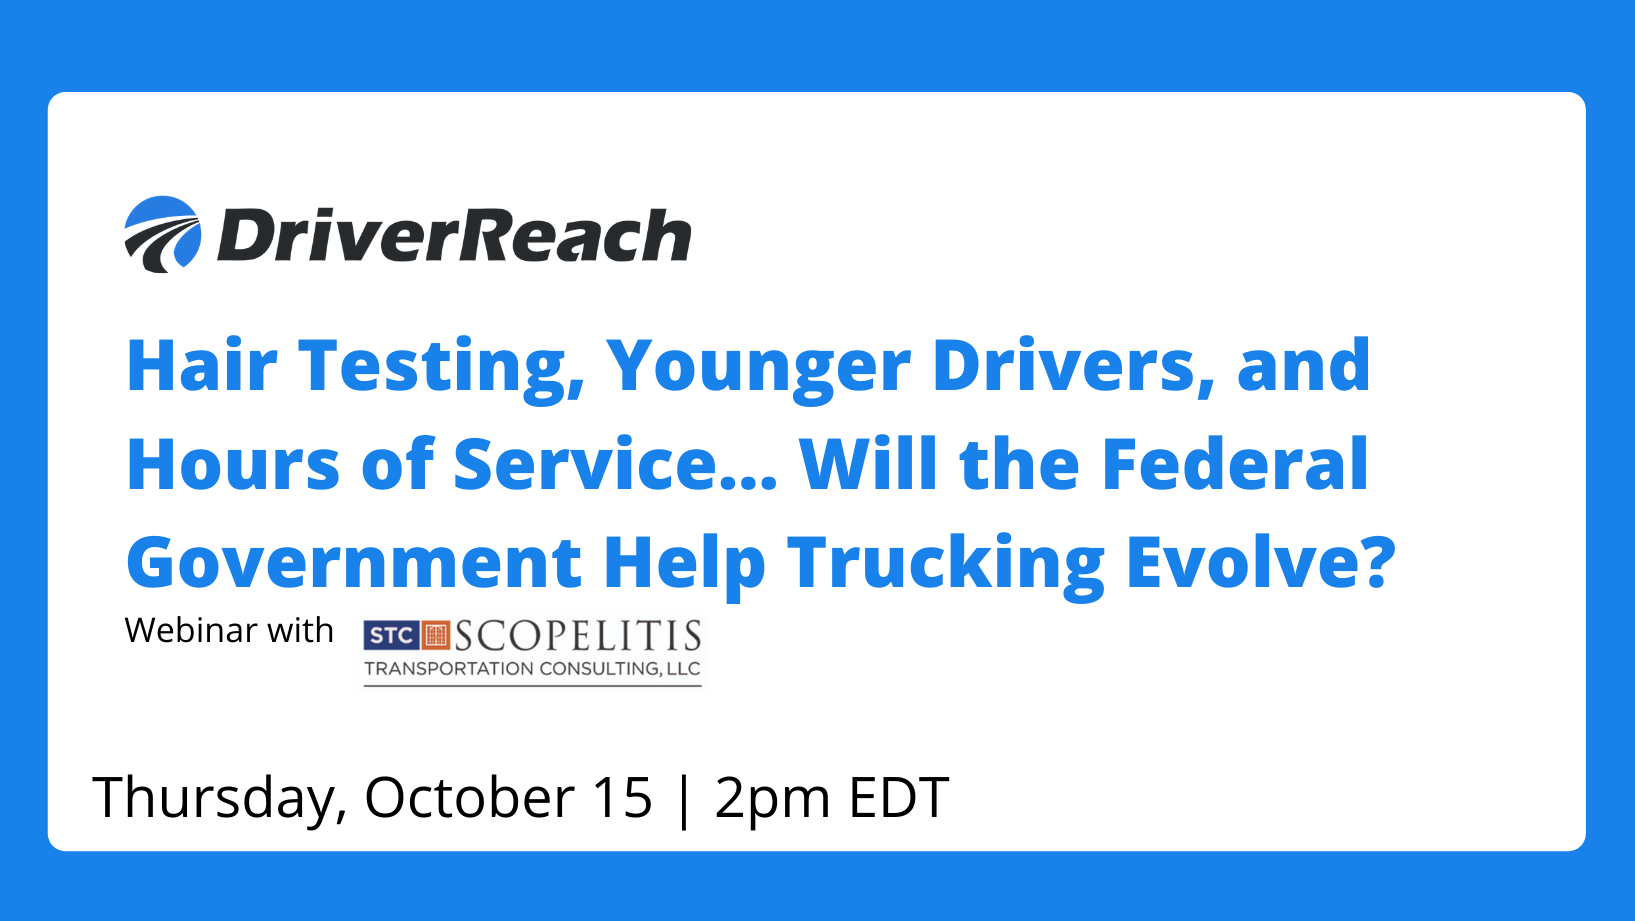 """Upcoming Webinar: """"Hair Testing, Younger Drivers, and Hours of Service… Will the Federal Government Help Trucking Evolve?"""""""